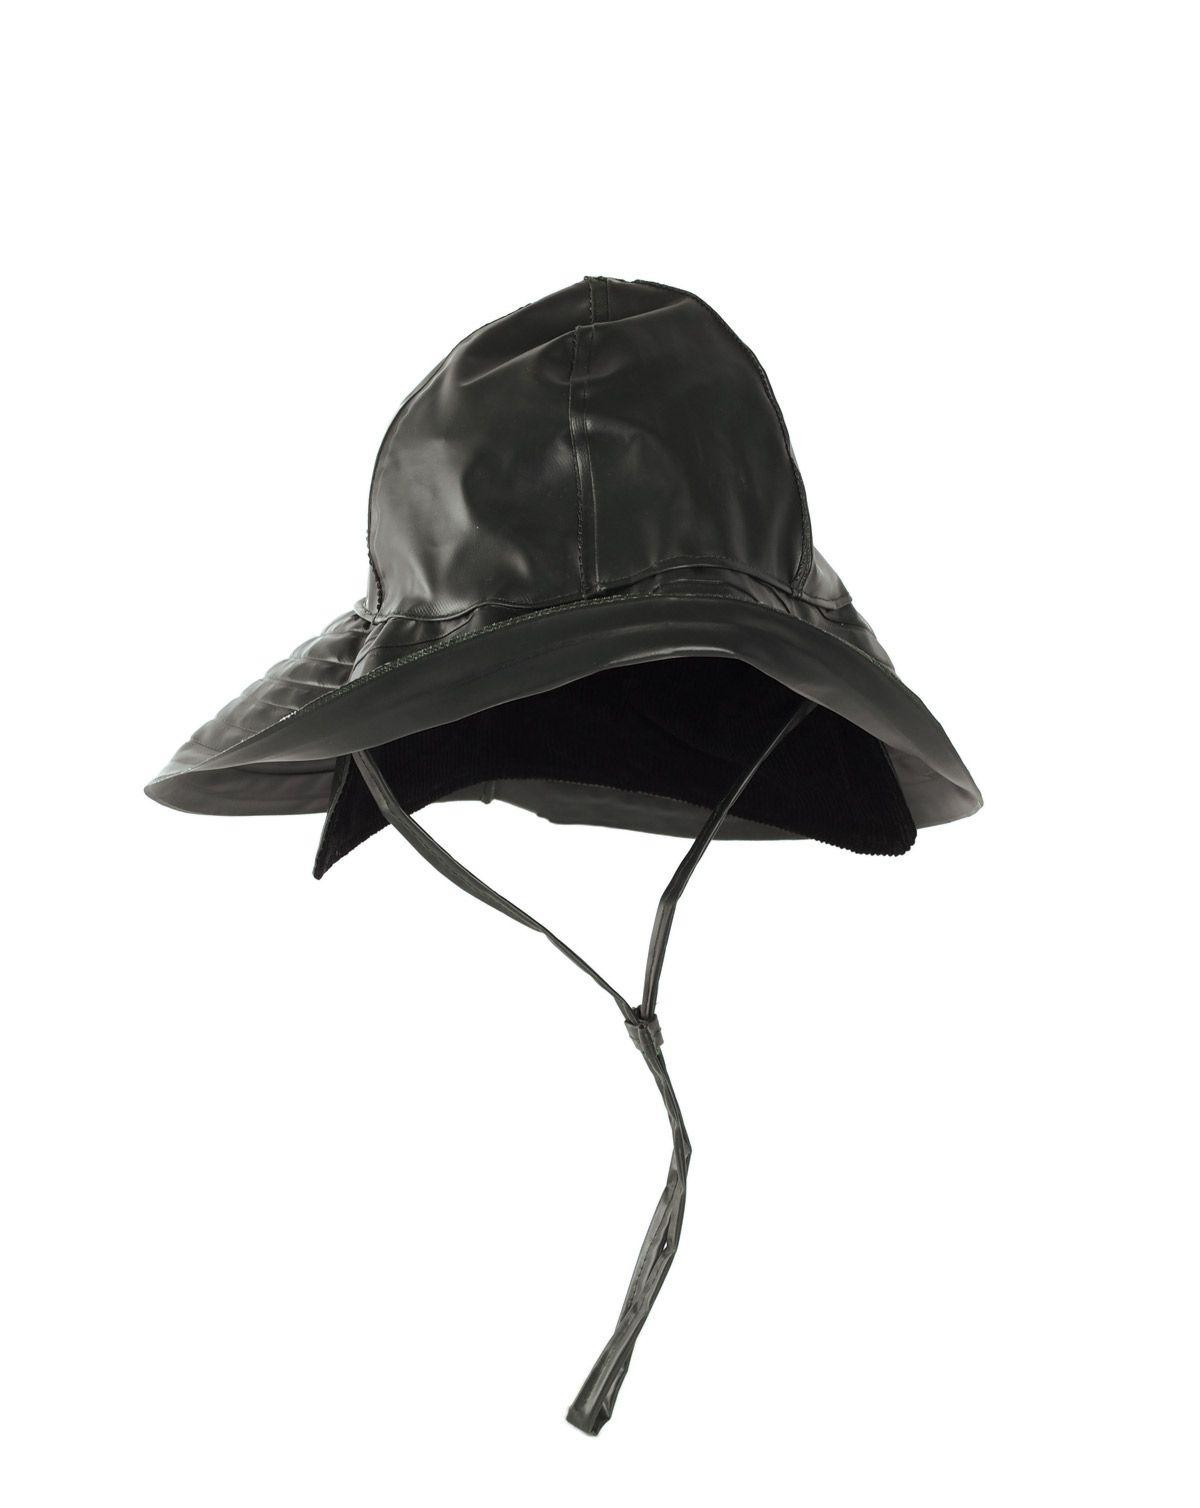 Image of   Mil-Tec Sydvest Fiskerhat (Sort, 2XL)